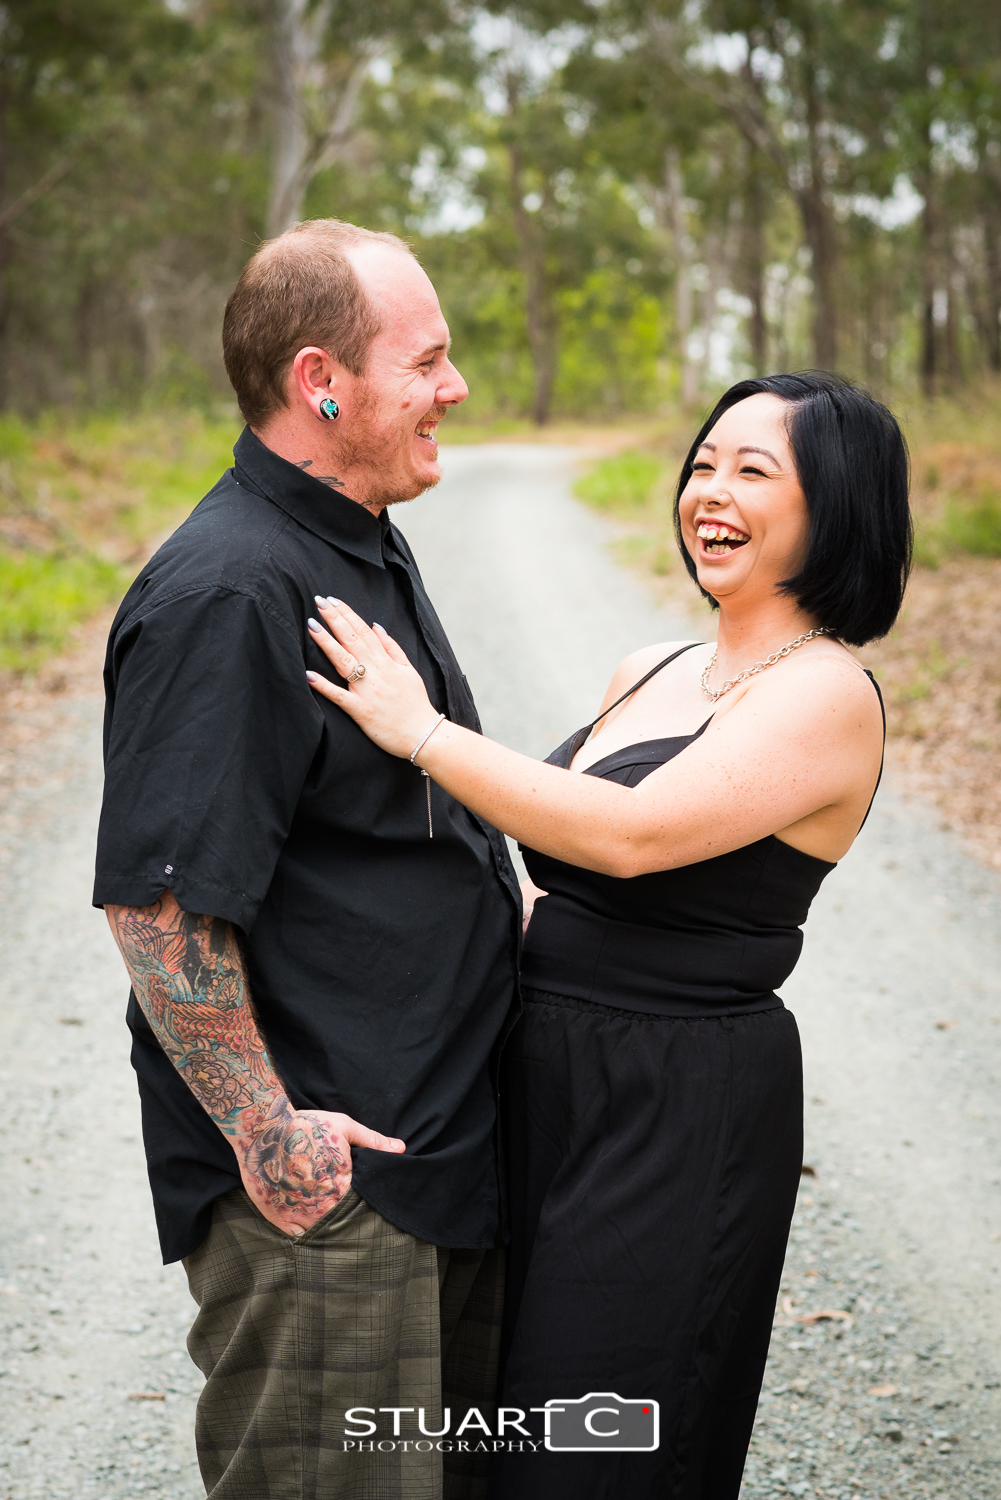 engaged couple standing on dirt road in bushland setting